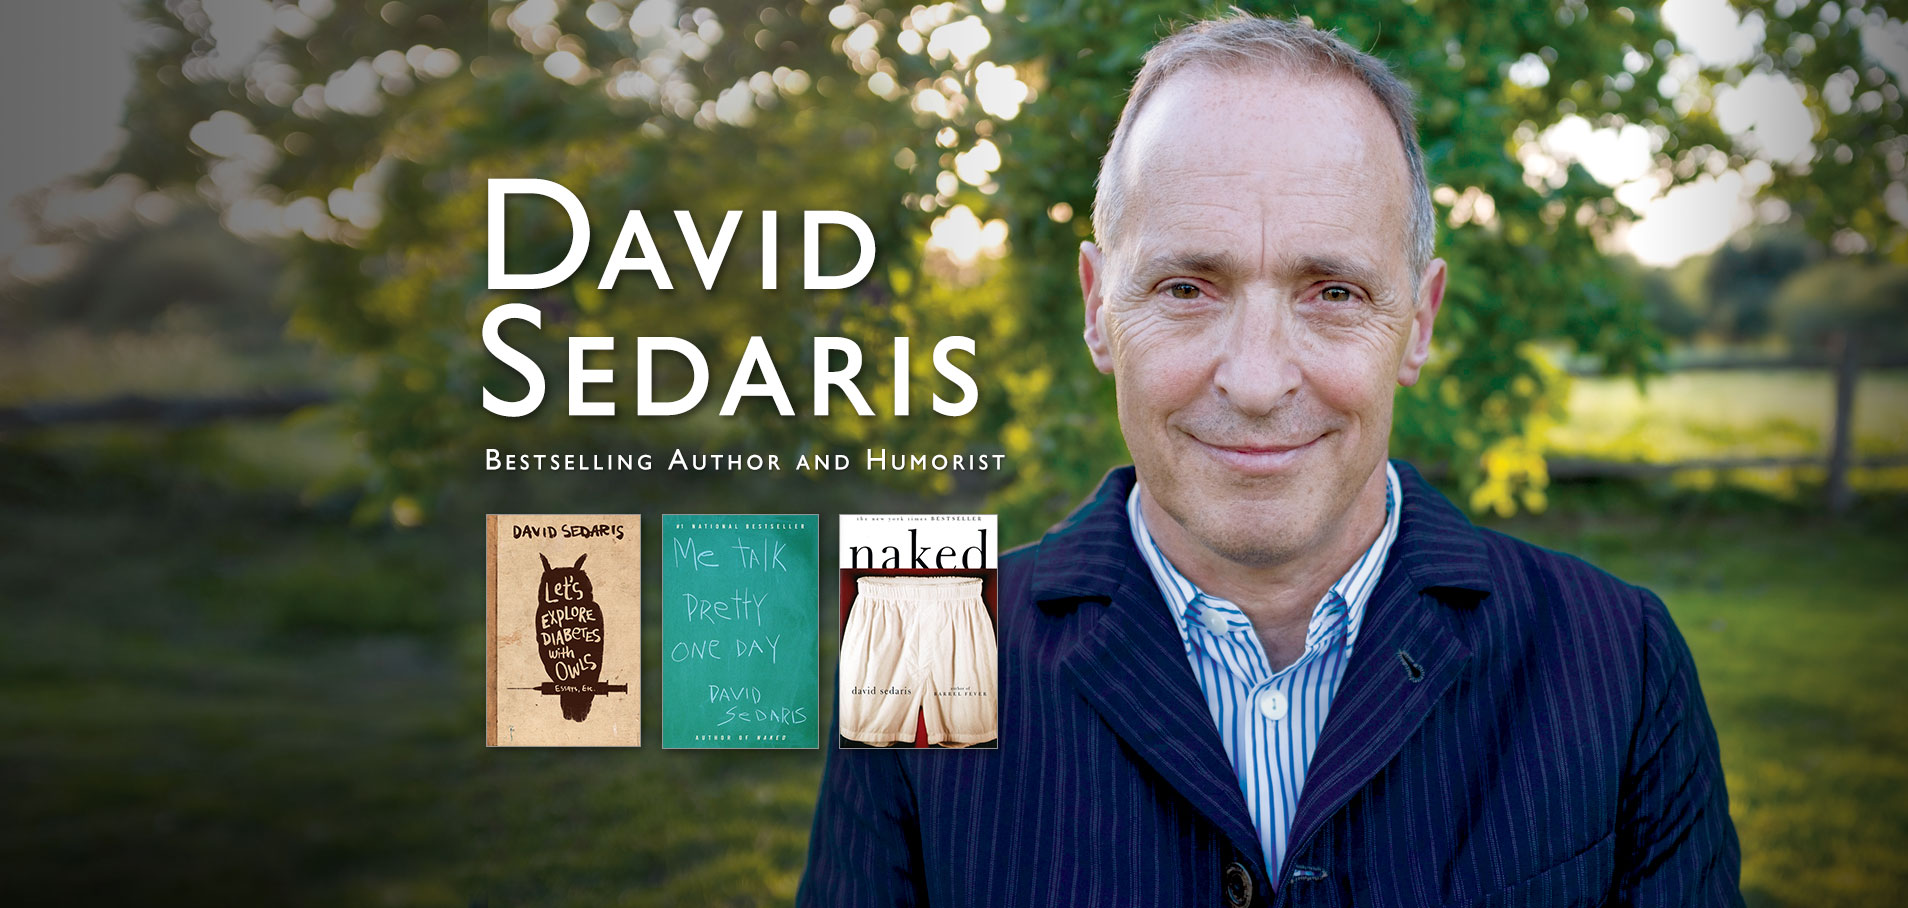 david sedaris essay on china Free essay: the world is forever in debt to china for its innovations essay about china 1151 words 5 pages the world is forever in debt to china for its.